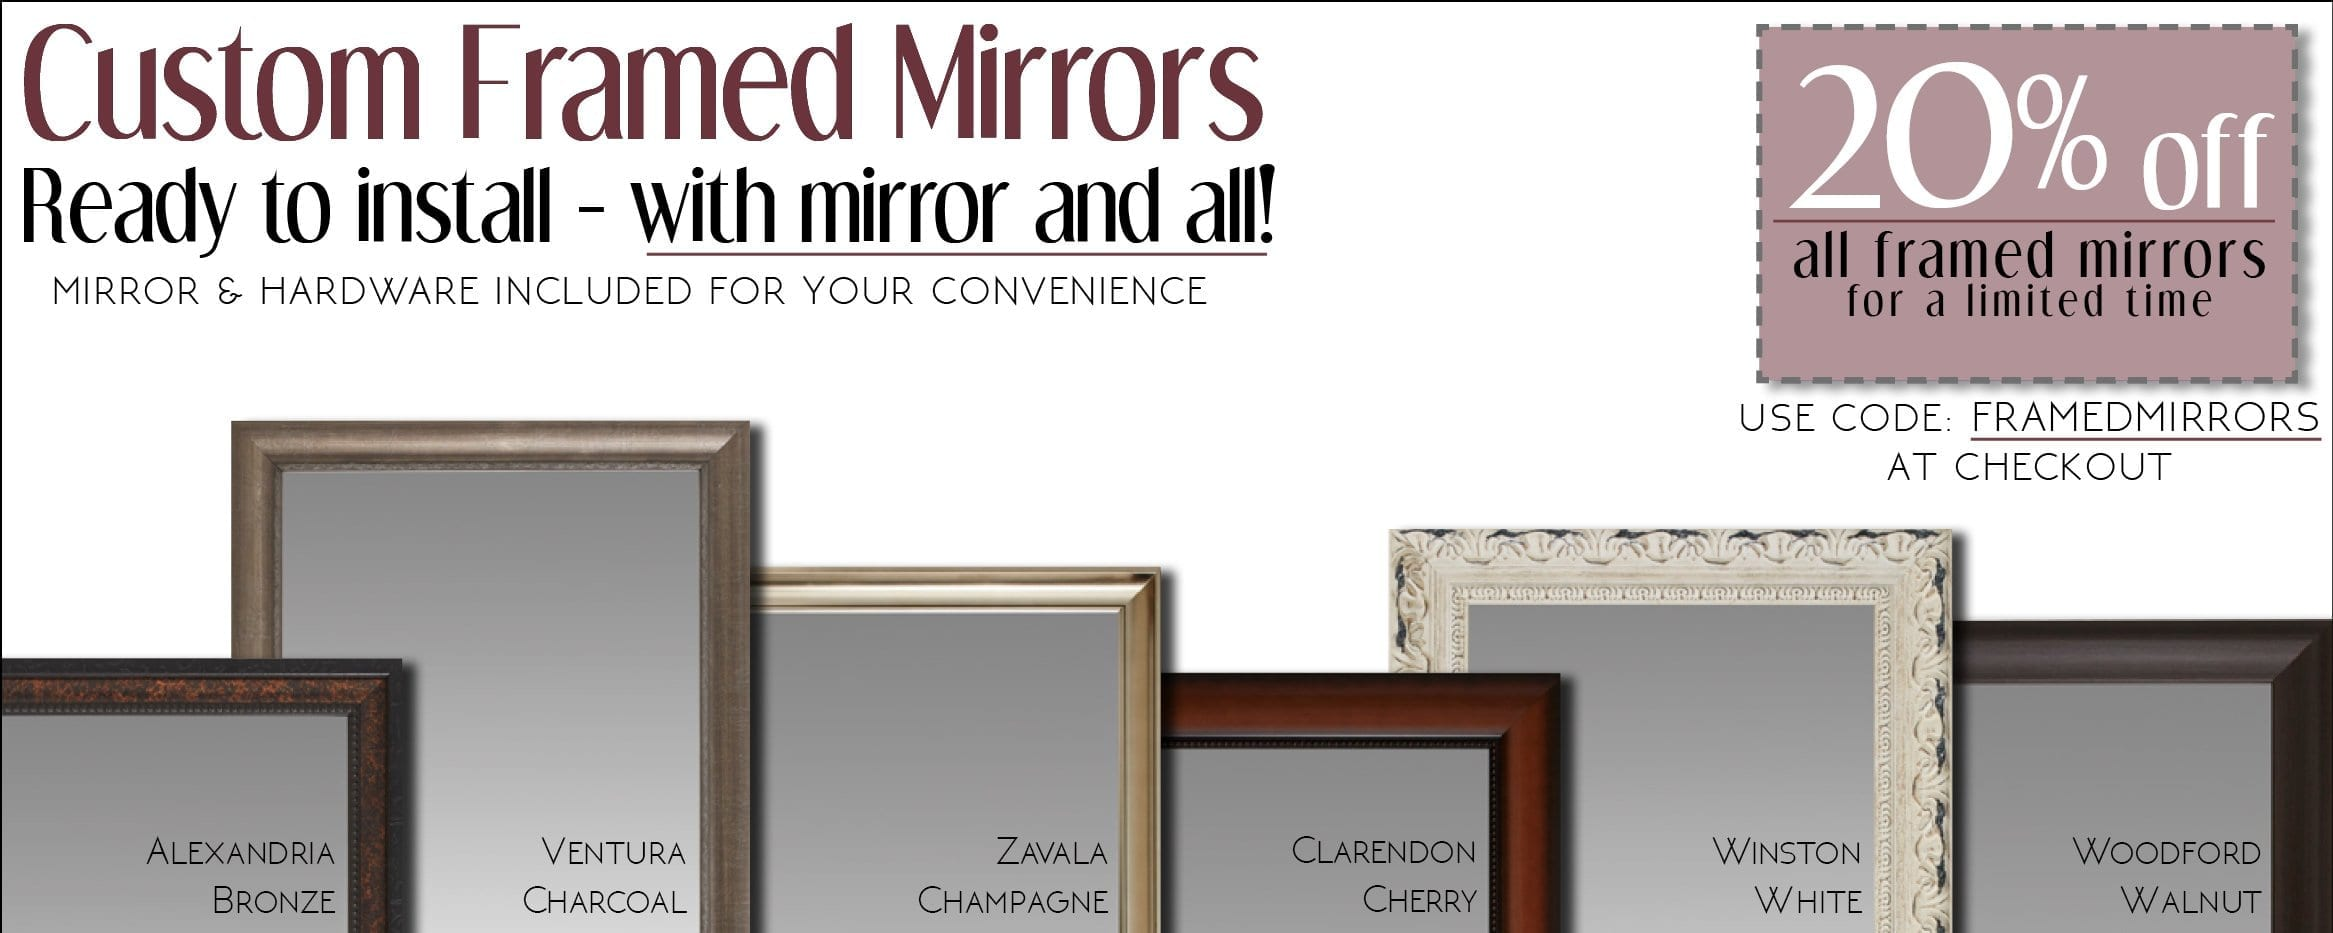 Framed-Mirrors-20off-sale-1